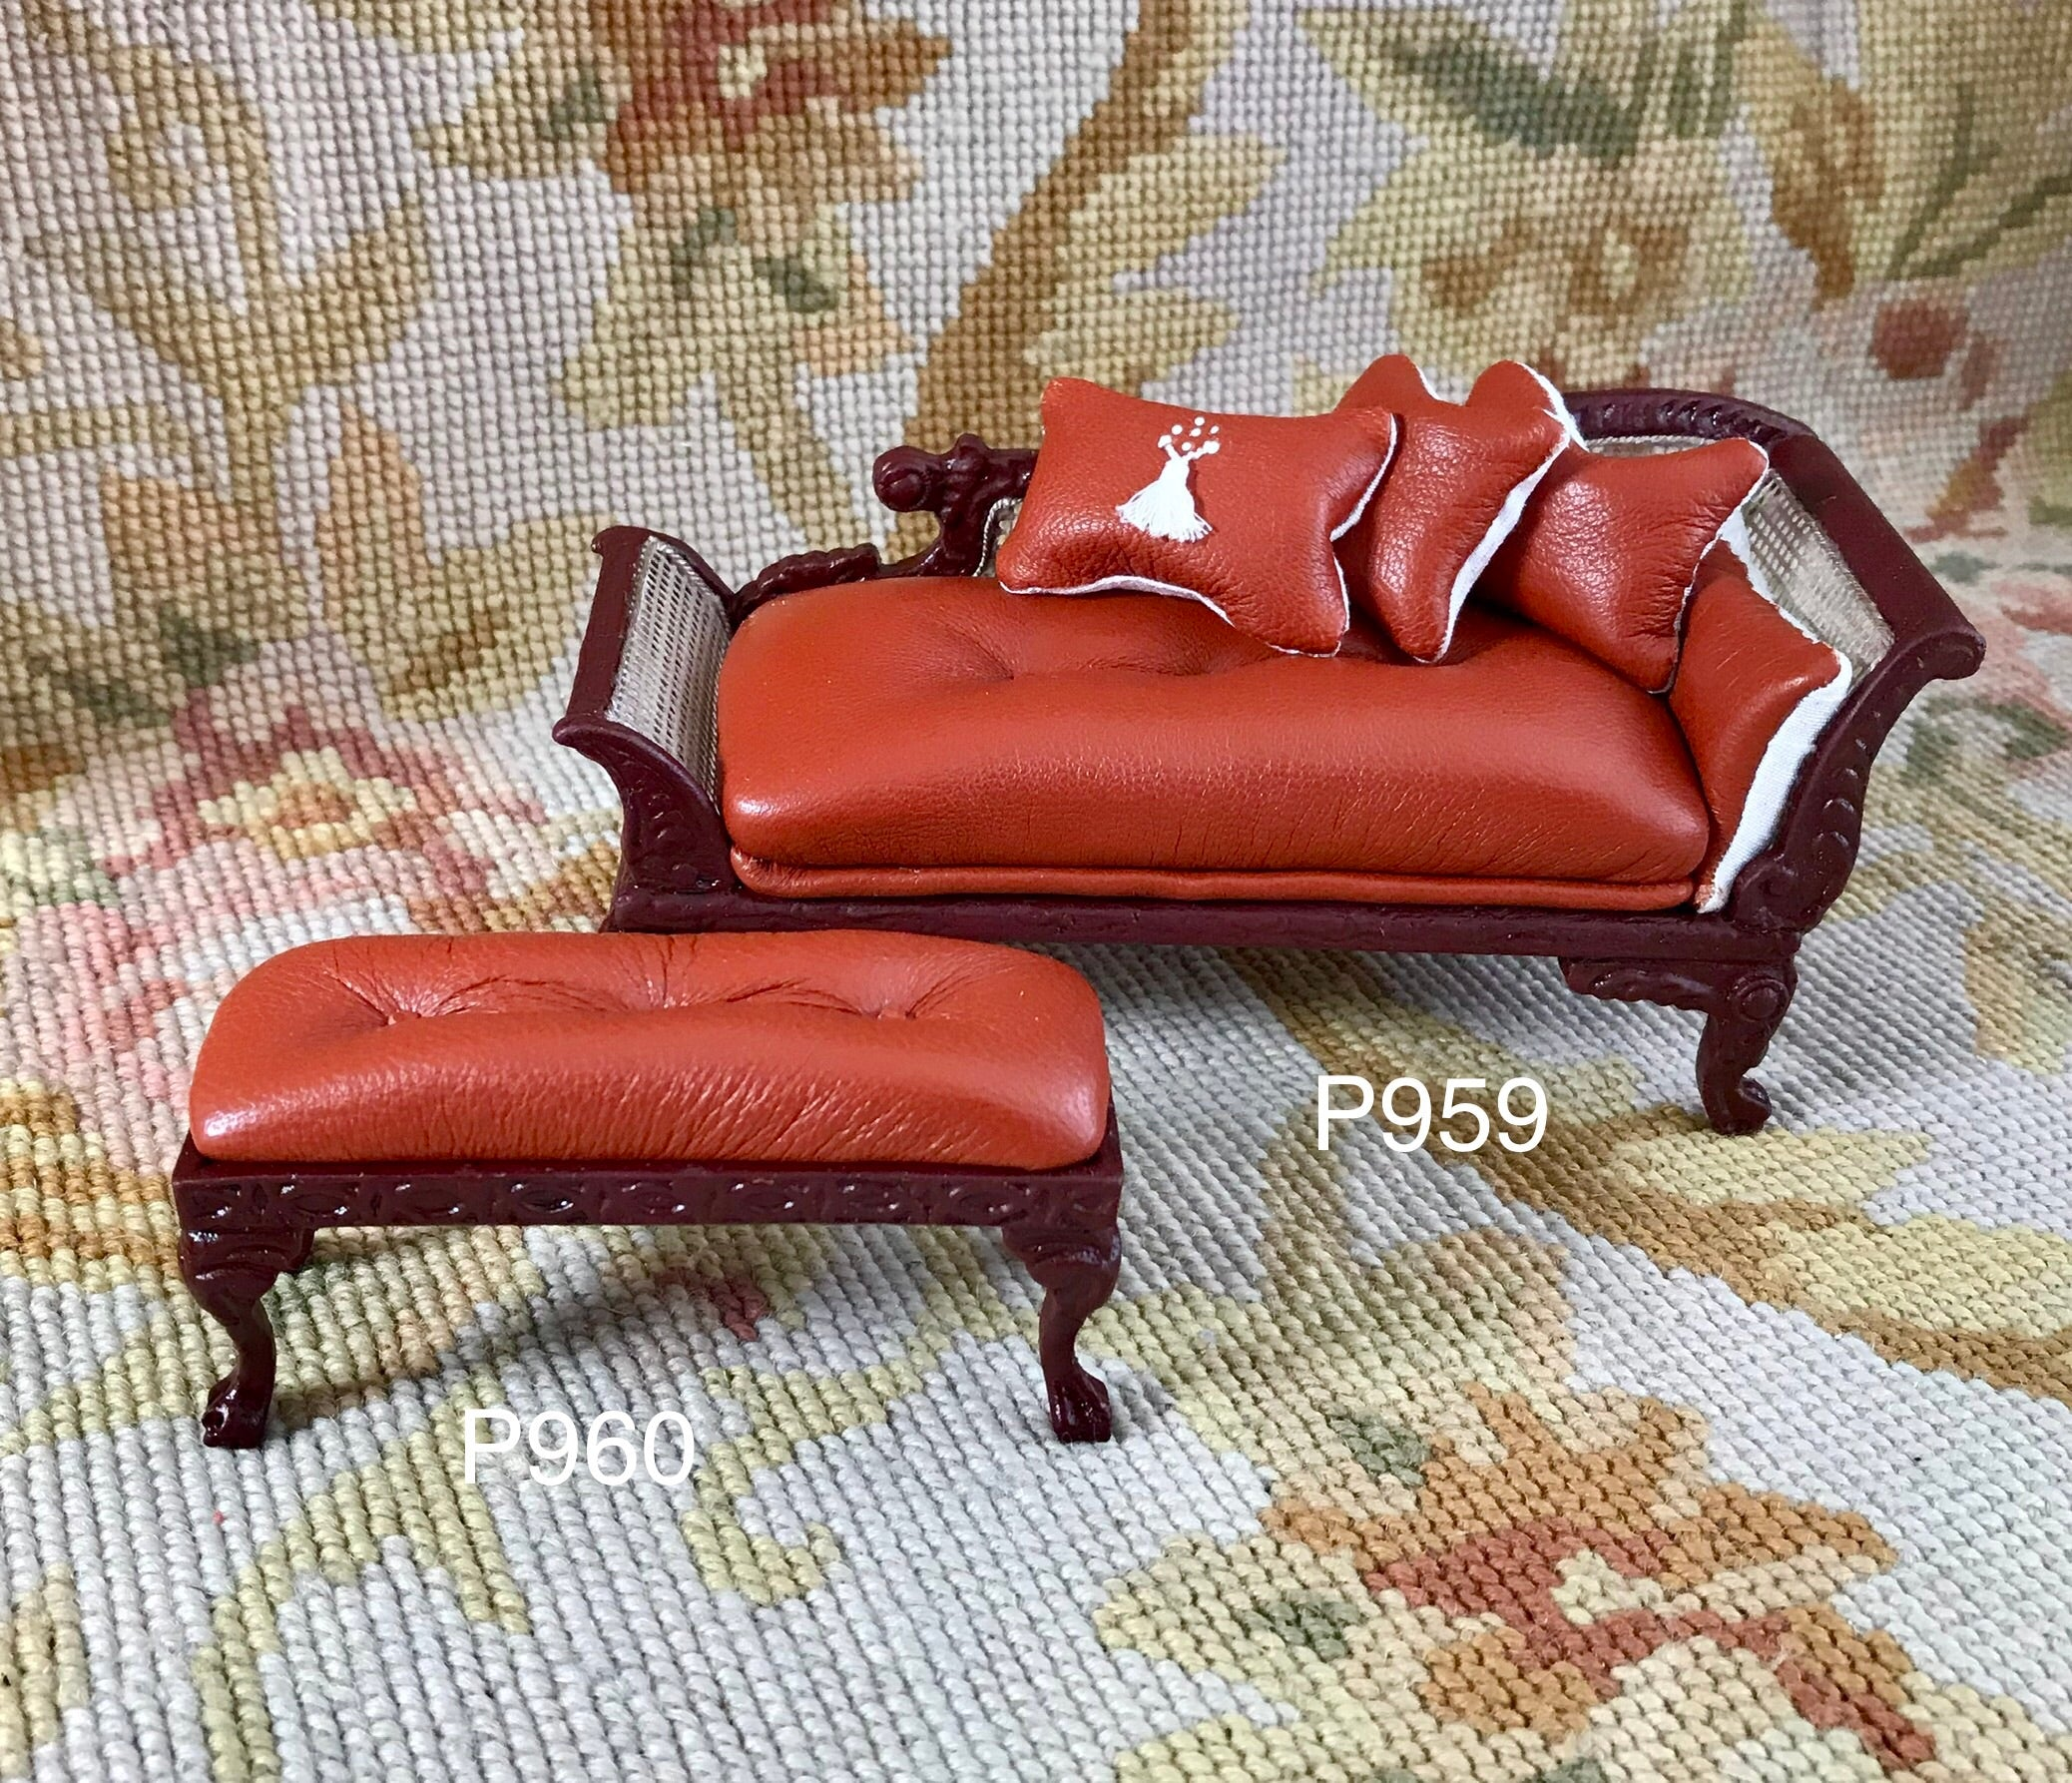 Stool Ottoman Seat Table Leather 1:12 Scale Dollhouse Miniature